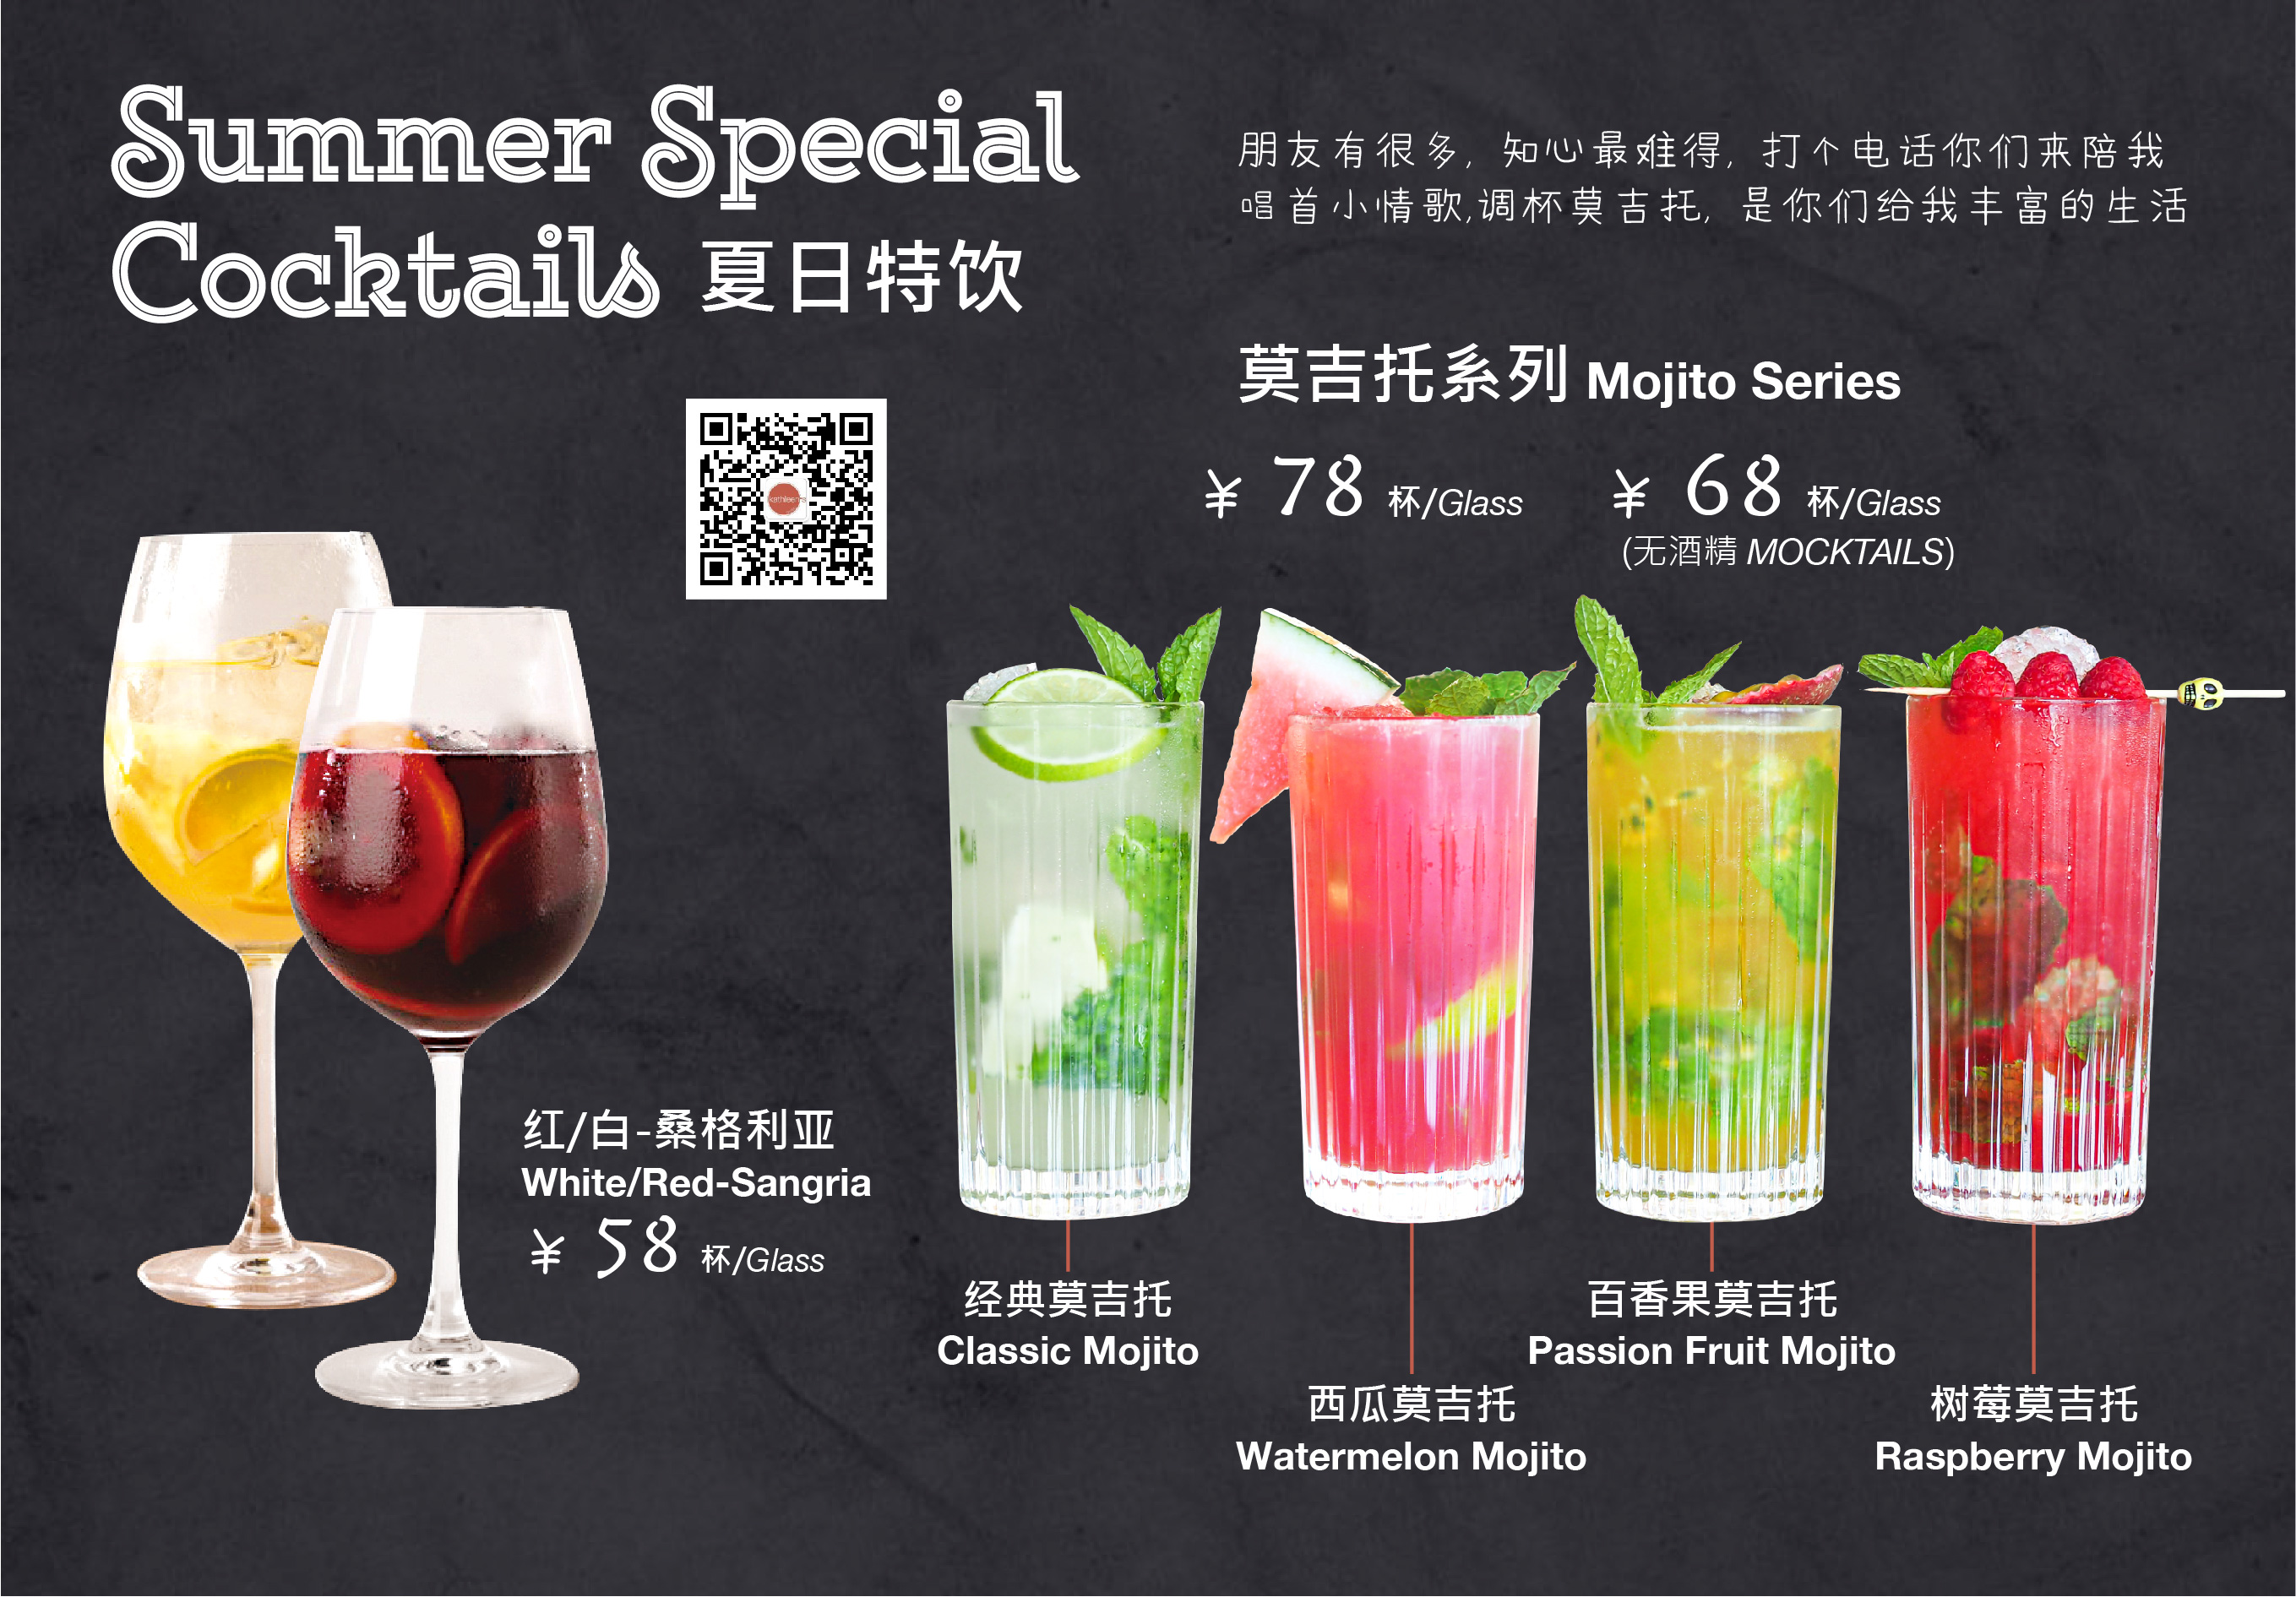 SUMMER SPECIAL COCKTAILS